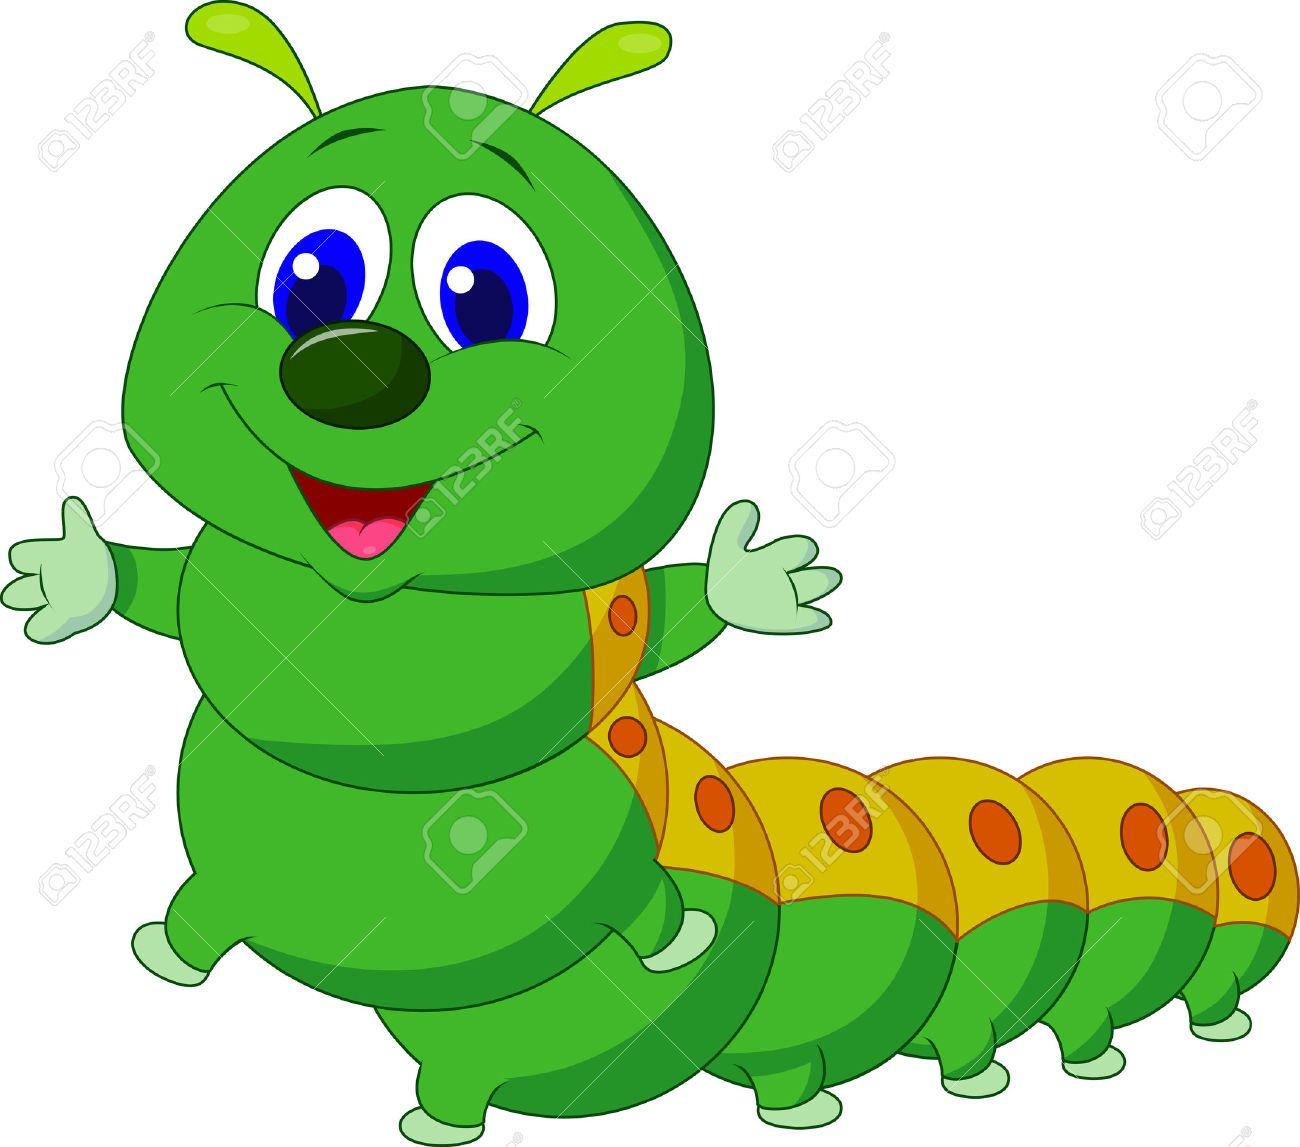 Caterpillar Cartoon Stock Photos, Pictures, Royalty Free.